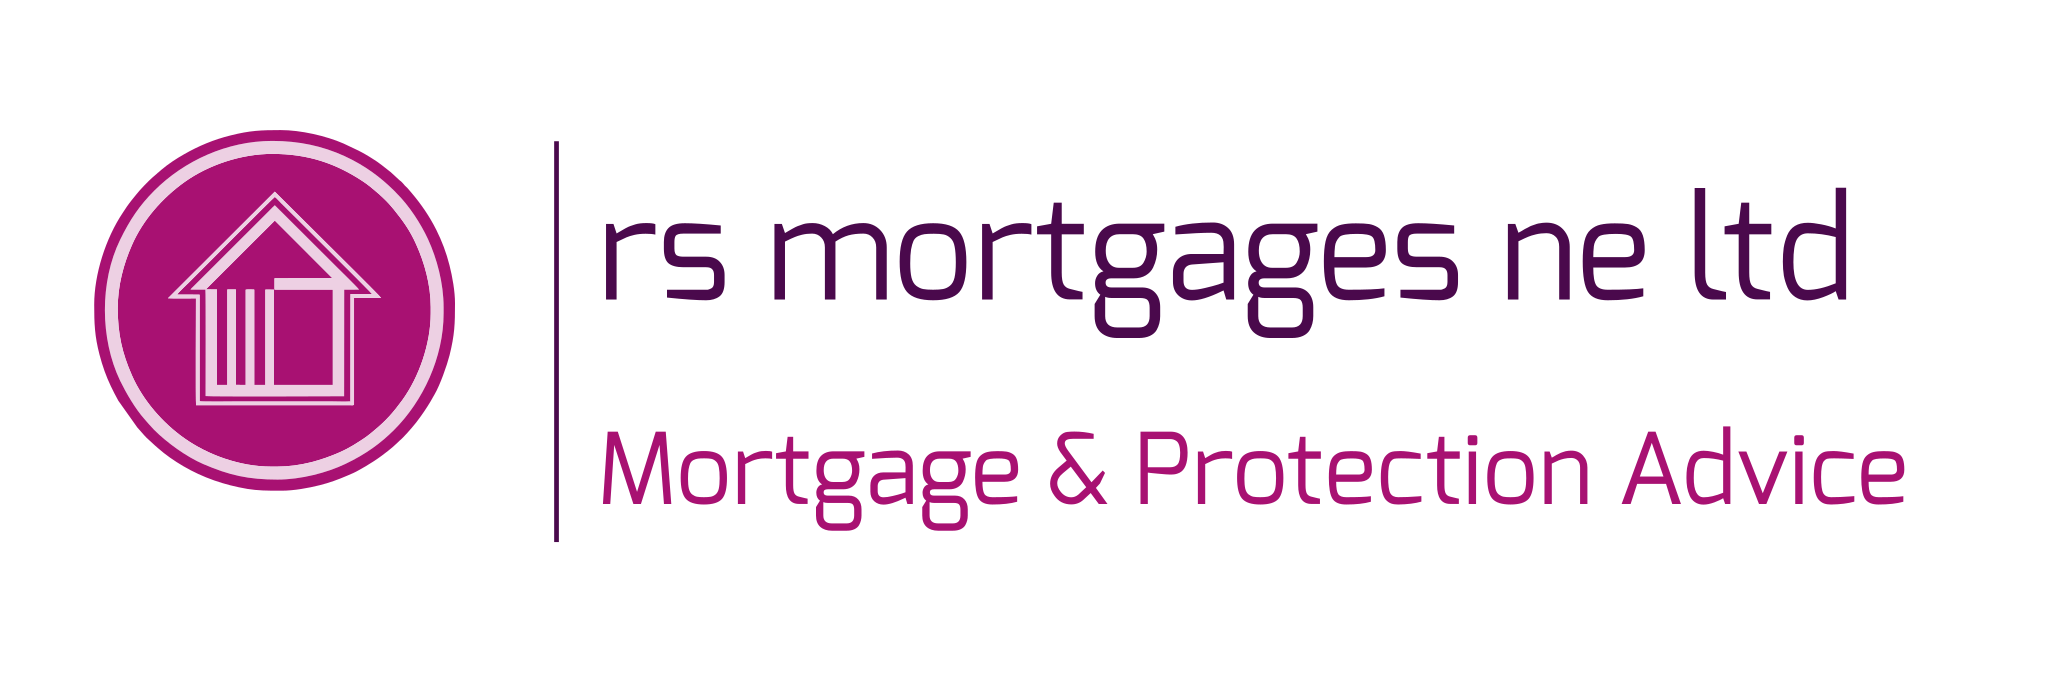 RS Mortgages, Newcastle